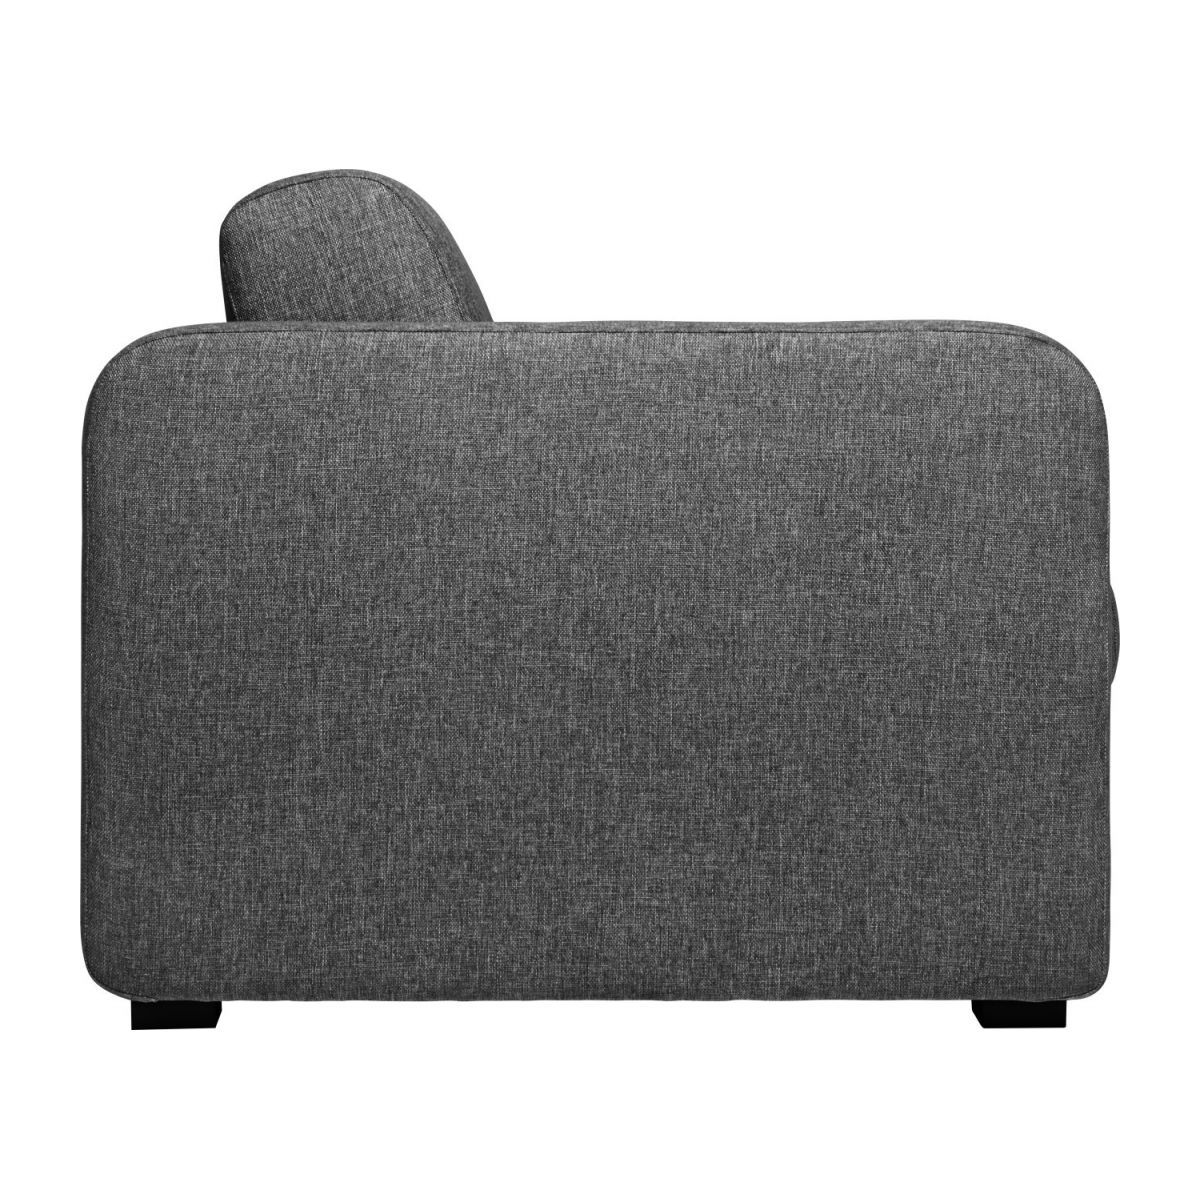 3-seater fabric sofa n°6